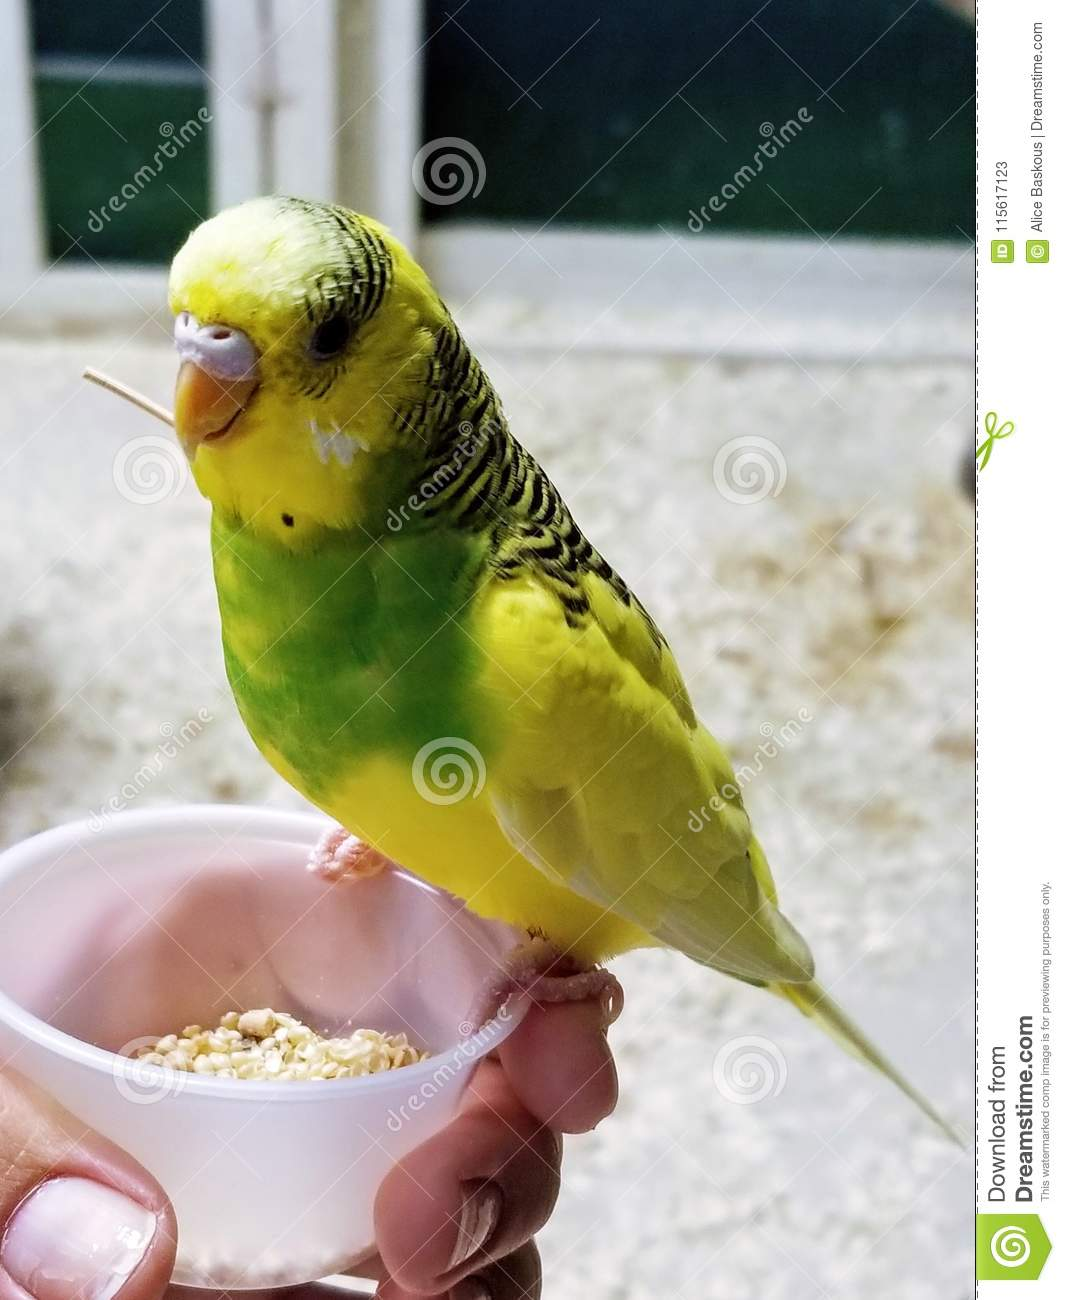 Yellow And Green Parakeet And Seeds Stock Image - Image of